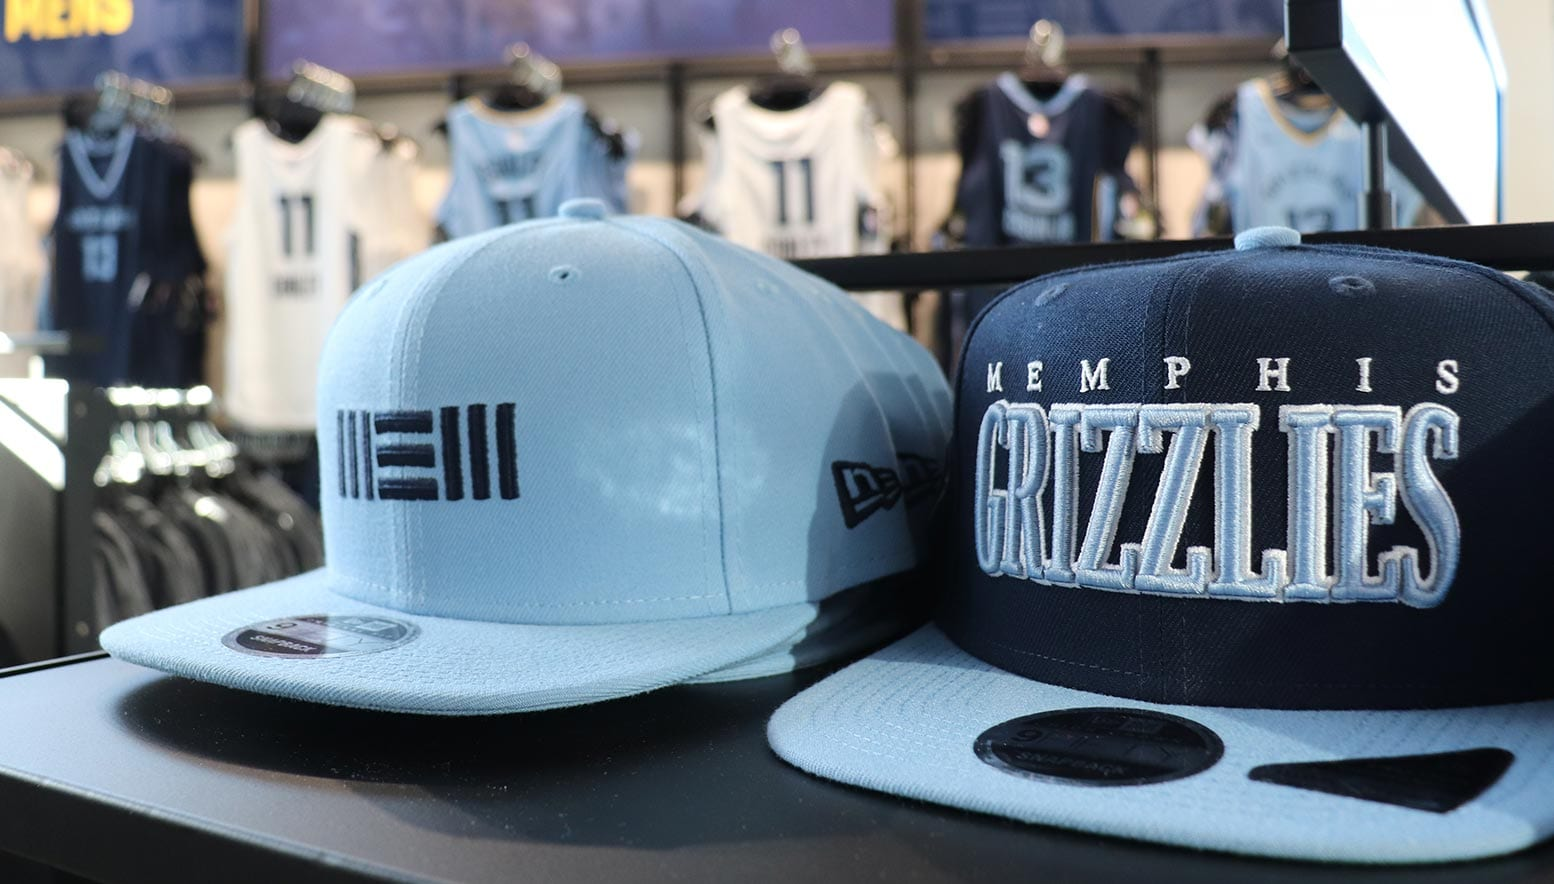 Grizz Den Team Store